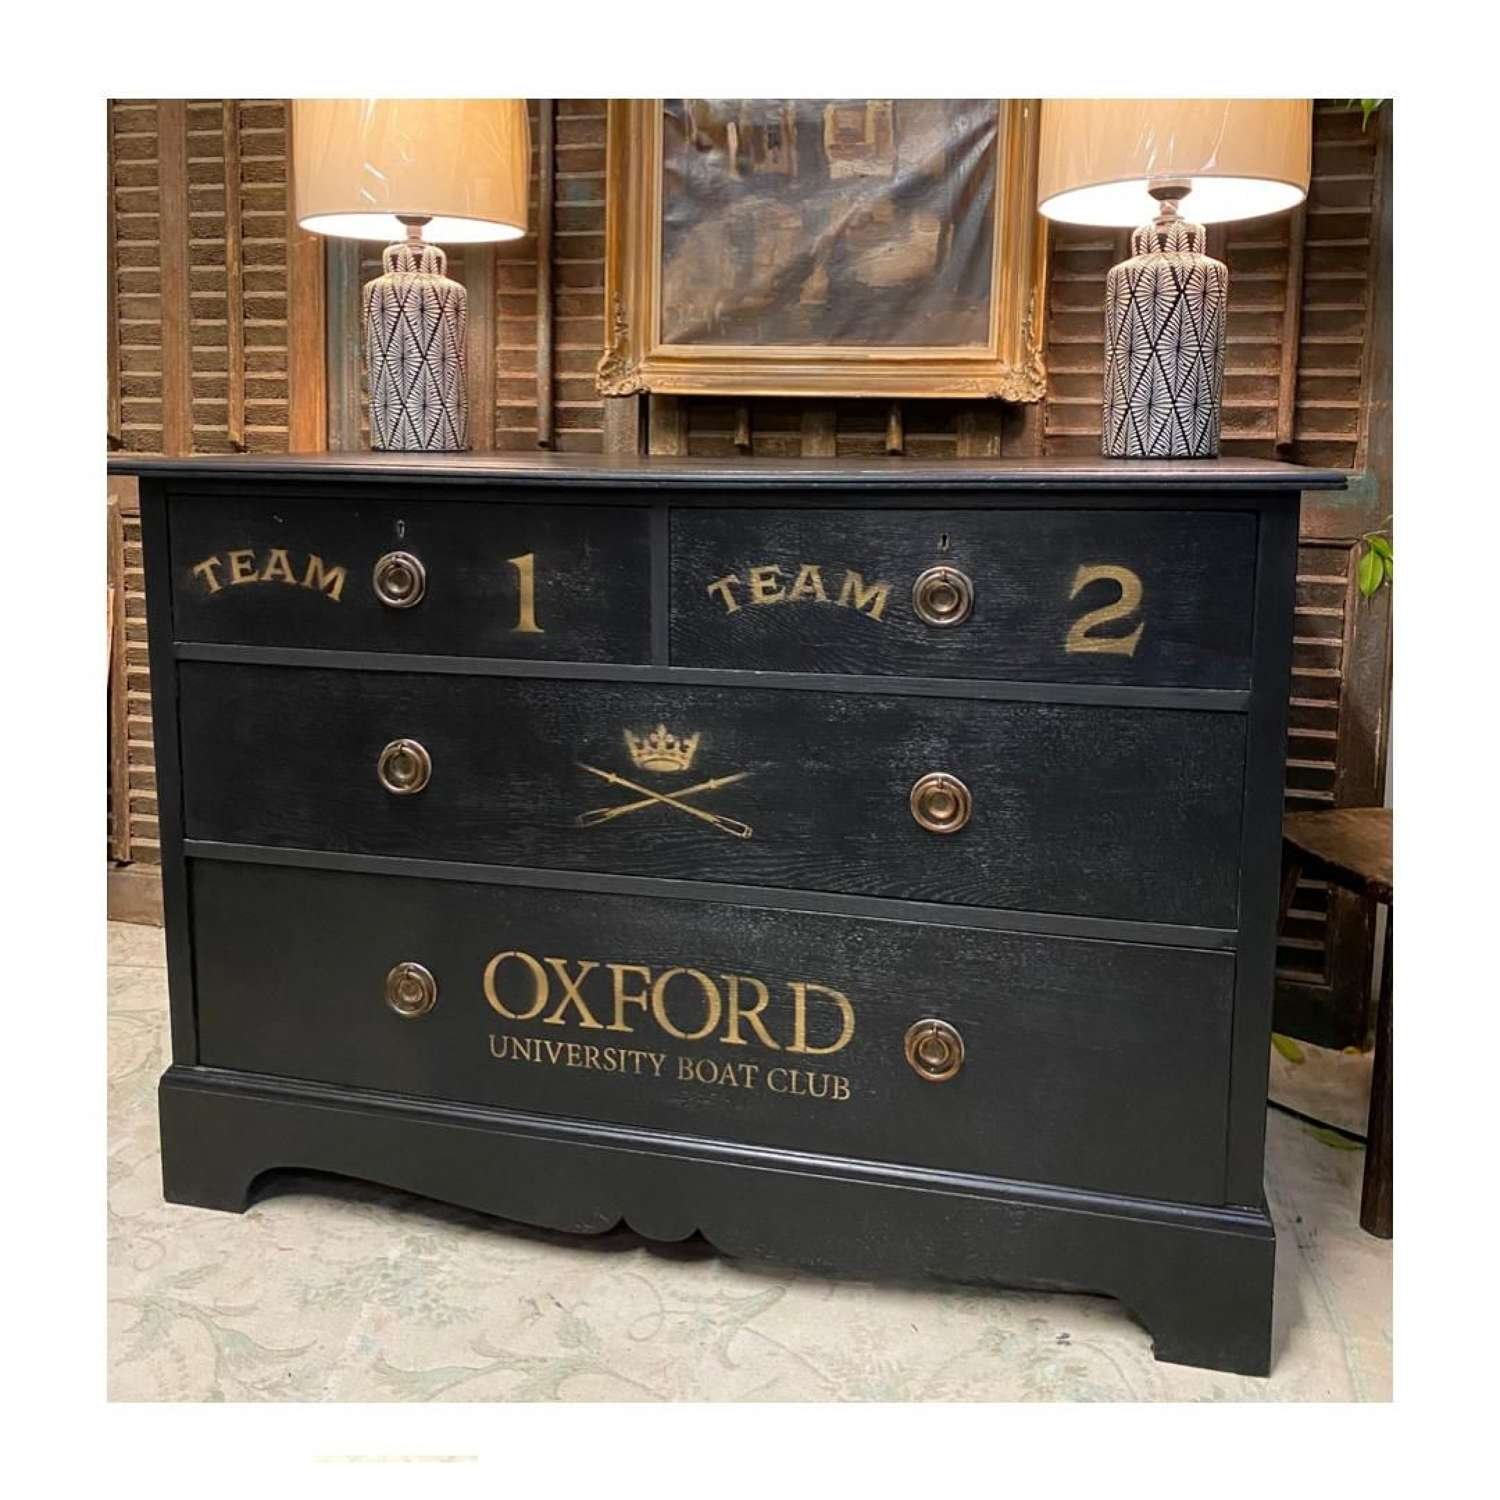 Beautiful Oxford University Boat Club chest of drawers